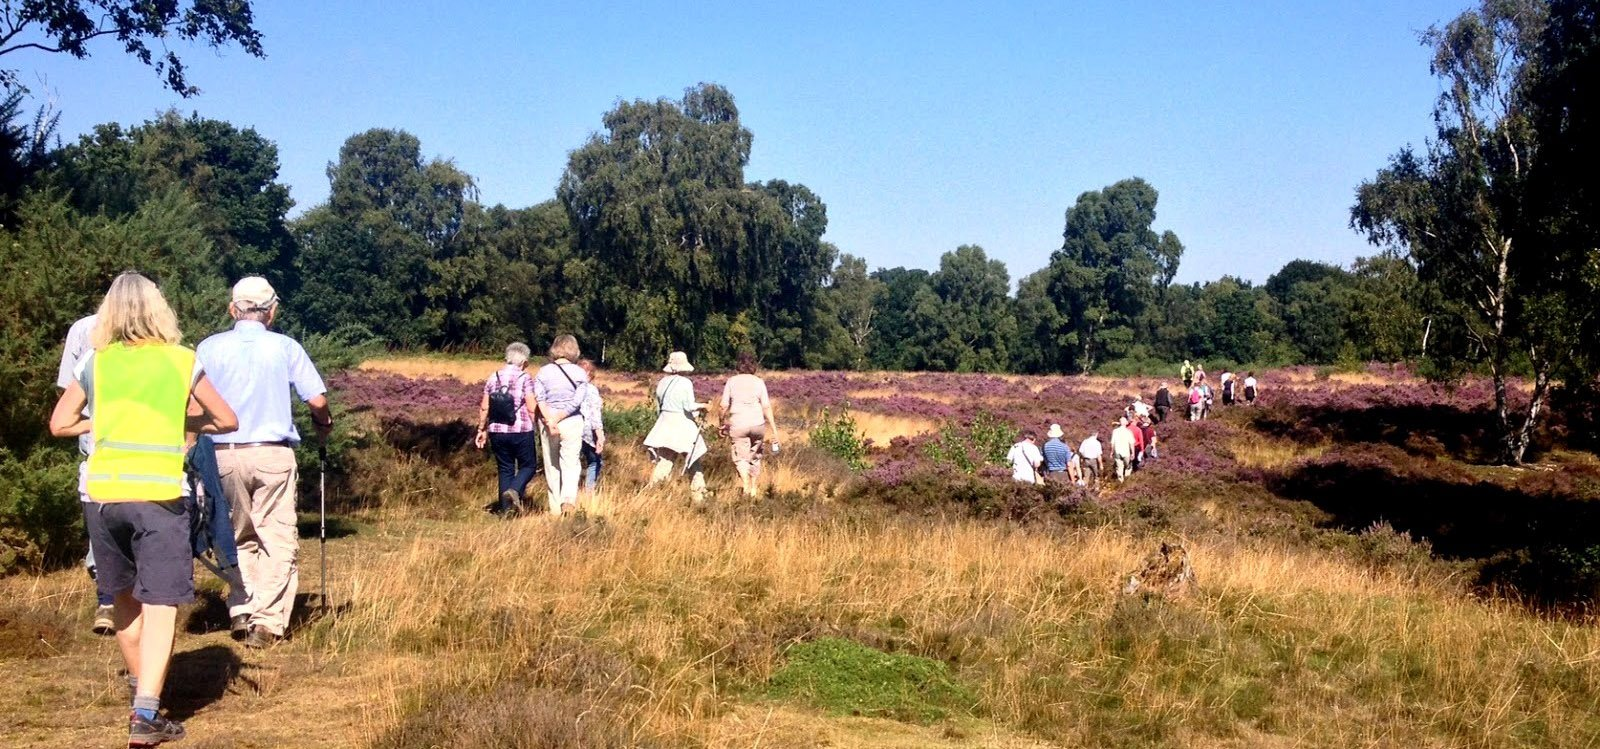 People on health walk at Coopers Hill Bedfordshire